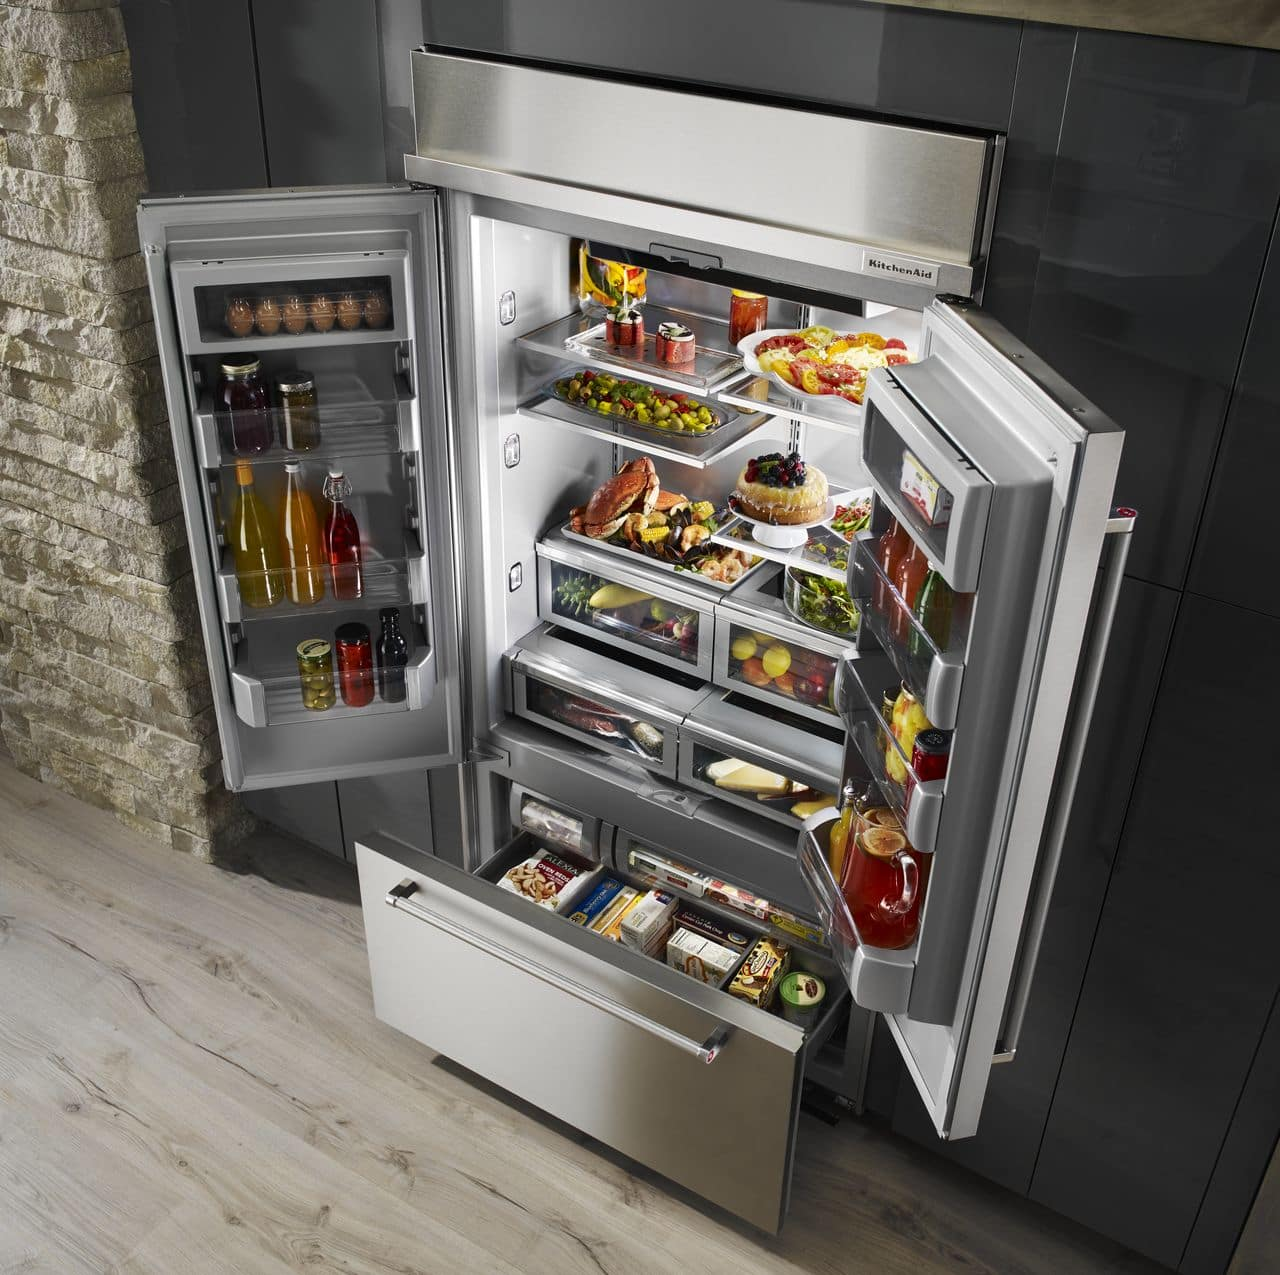 door inch built kitchenaid store in french view rc willey jsp rcwilley refrigerator panel appliances furniture ready doors refrigerators